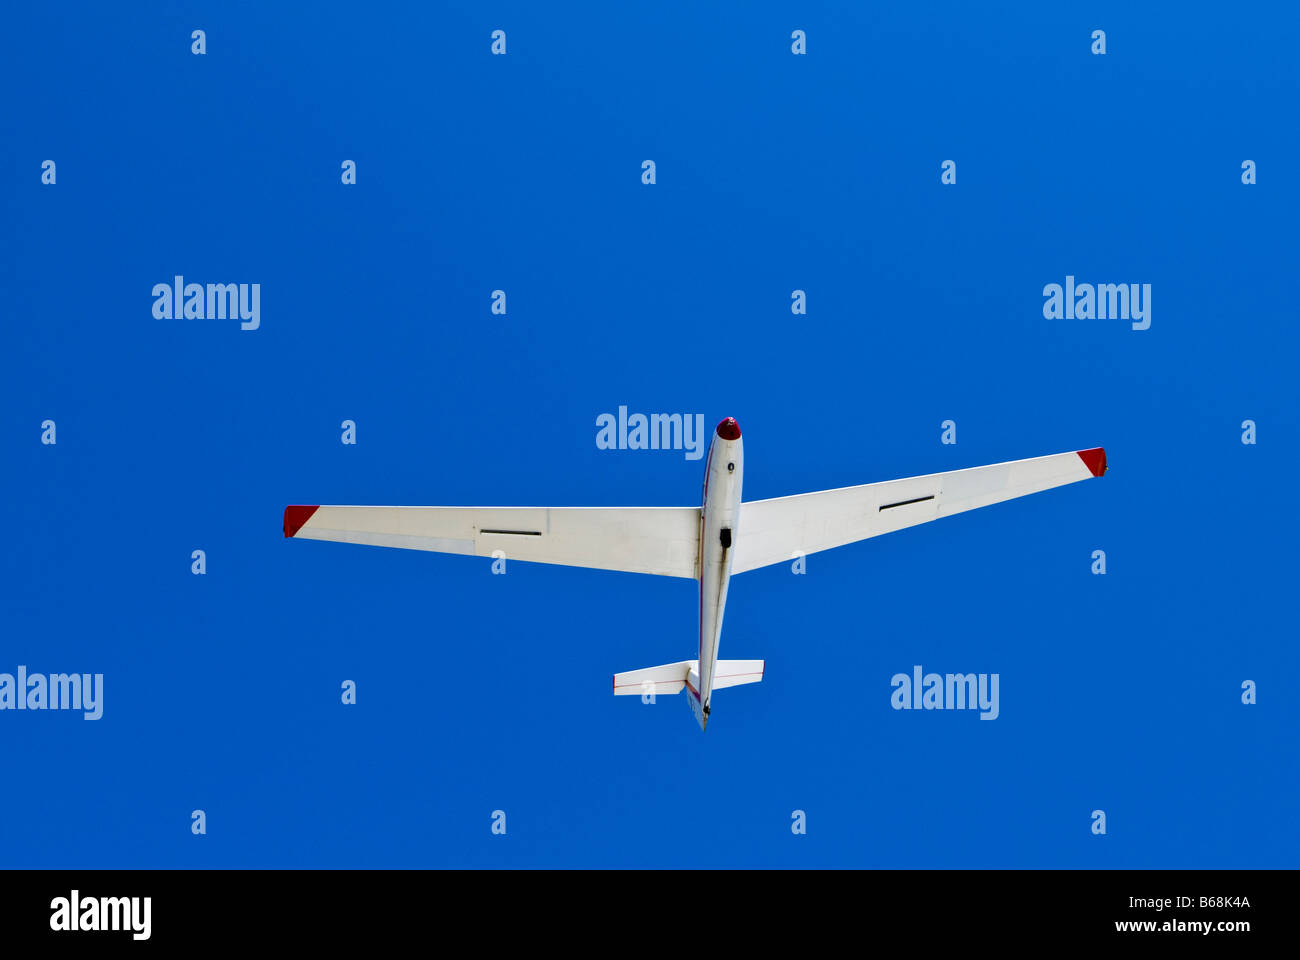 Blanik L-23 glider in the air, Greater Houston Soaring Association, Wallis, Texas. - Stock Image